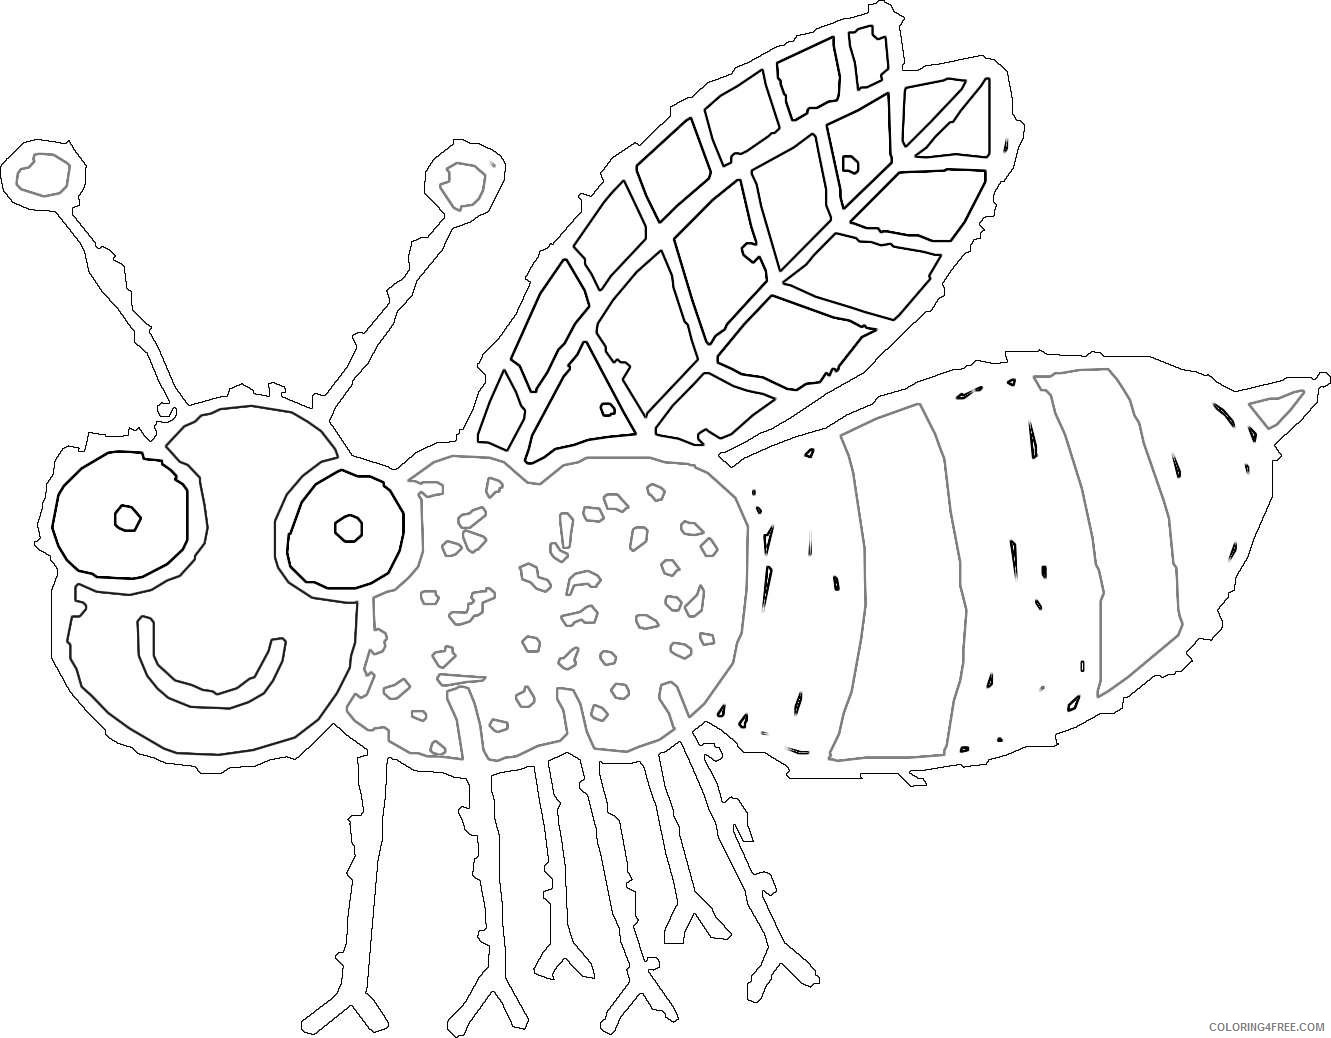 wasp bee wasp tattoo 2 1331px png ot8T5o coloring